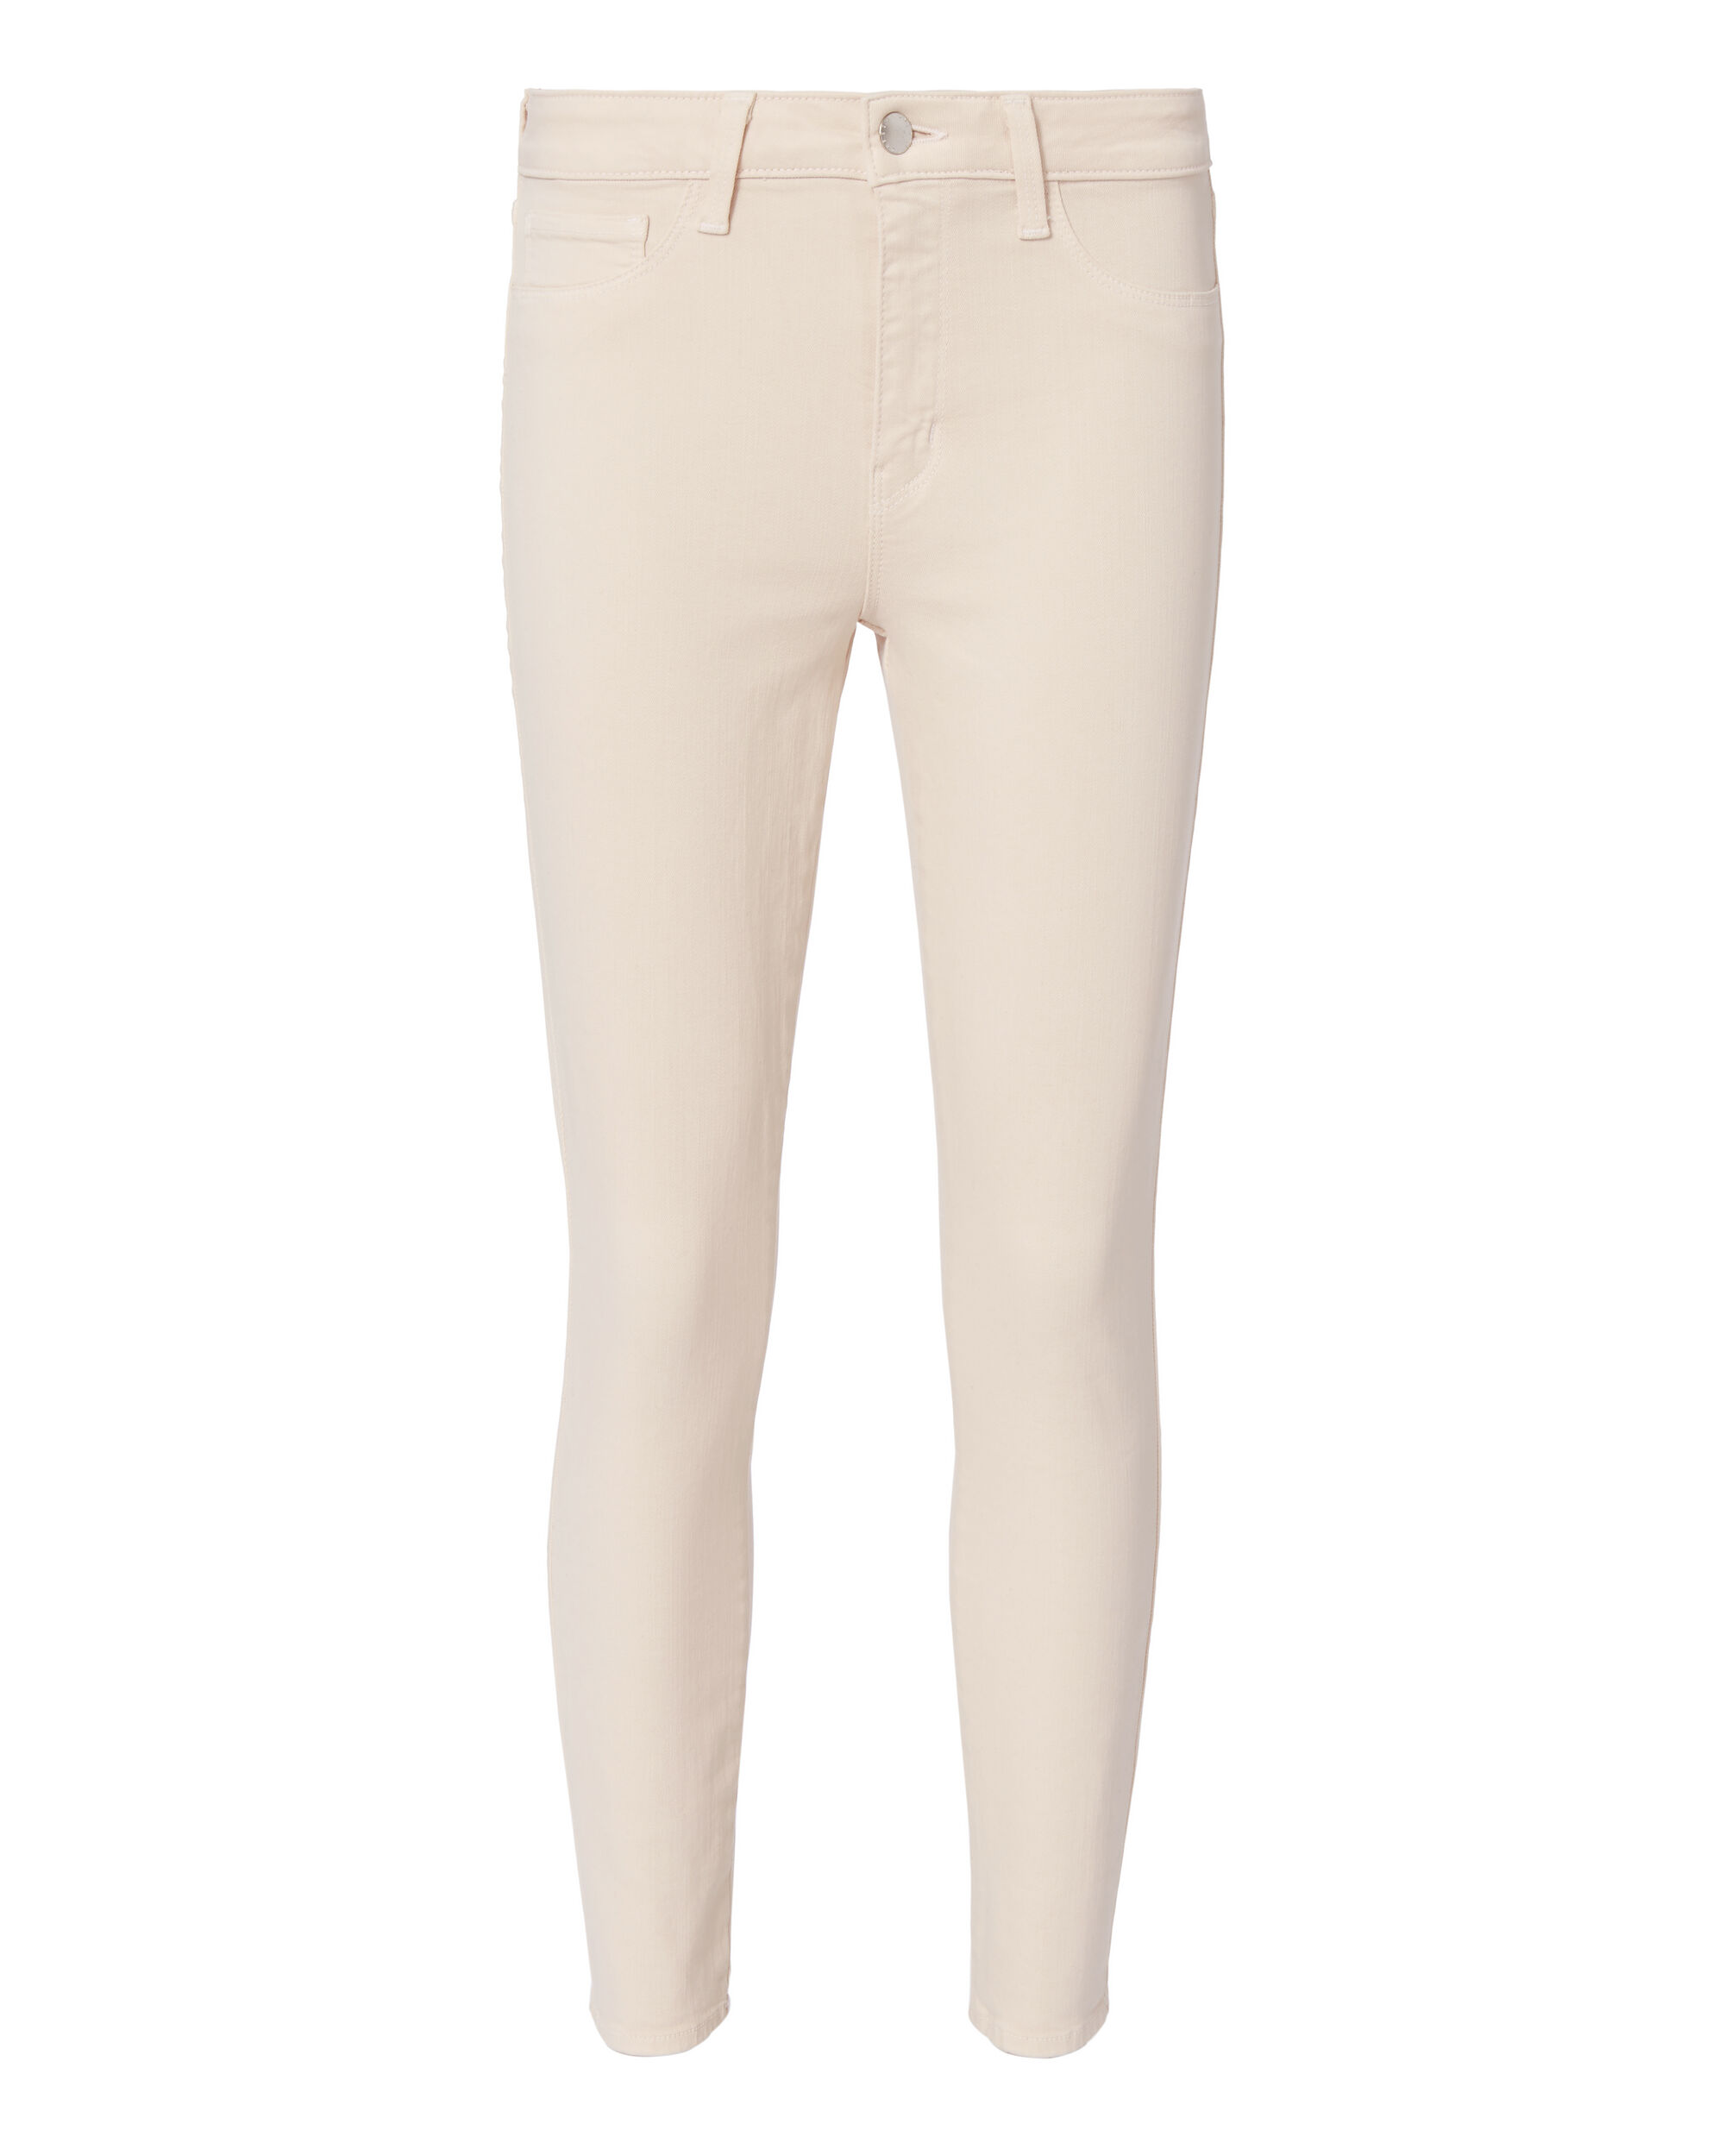 Margot Quartz High-Rise Ankle Skinny Jeans, PINK, hi-res